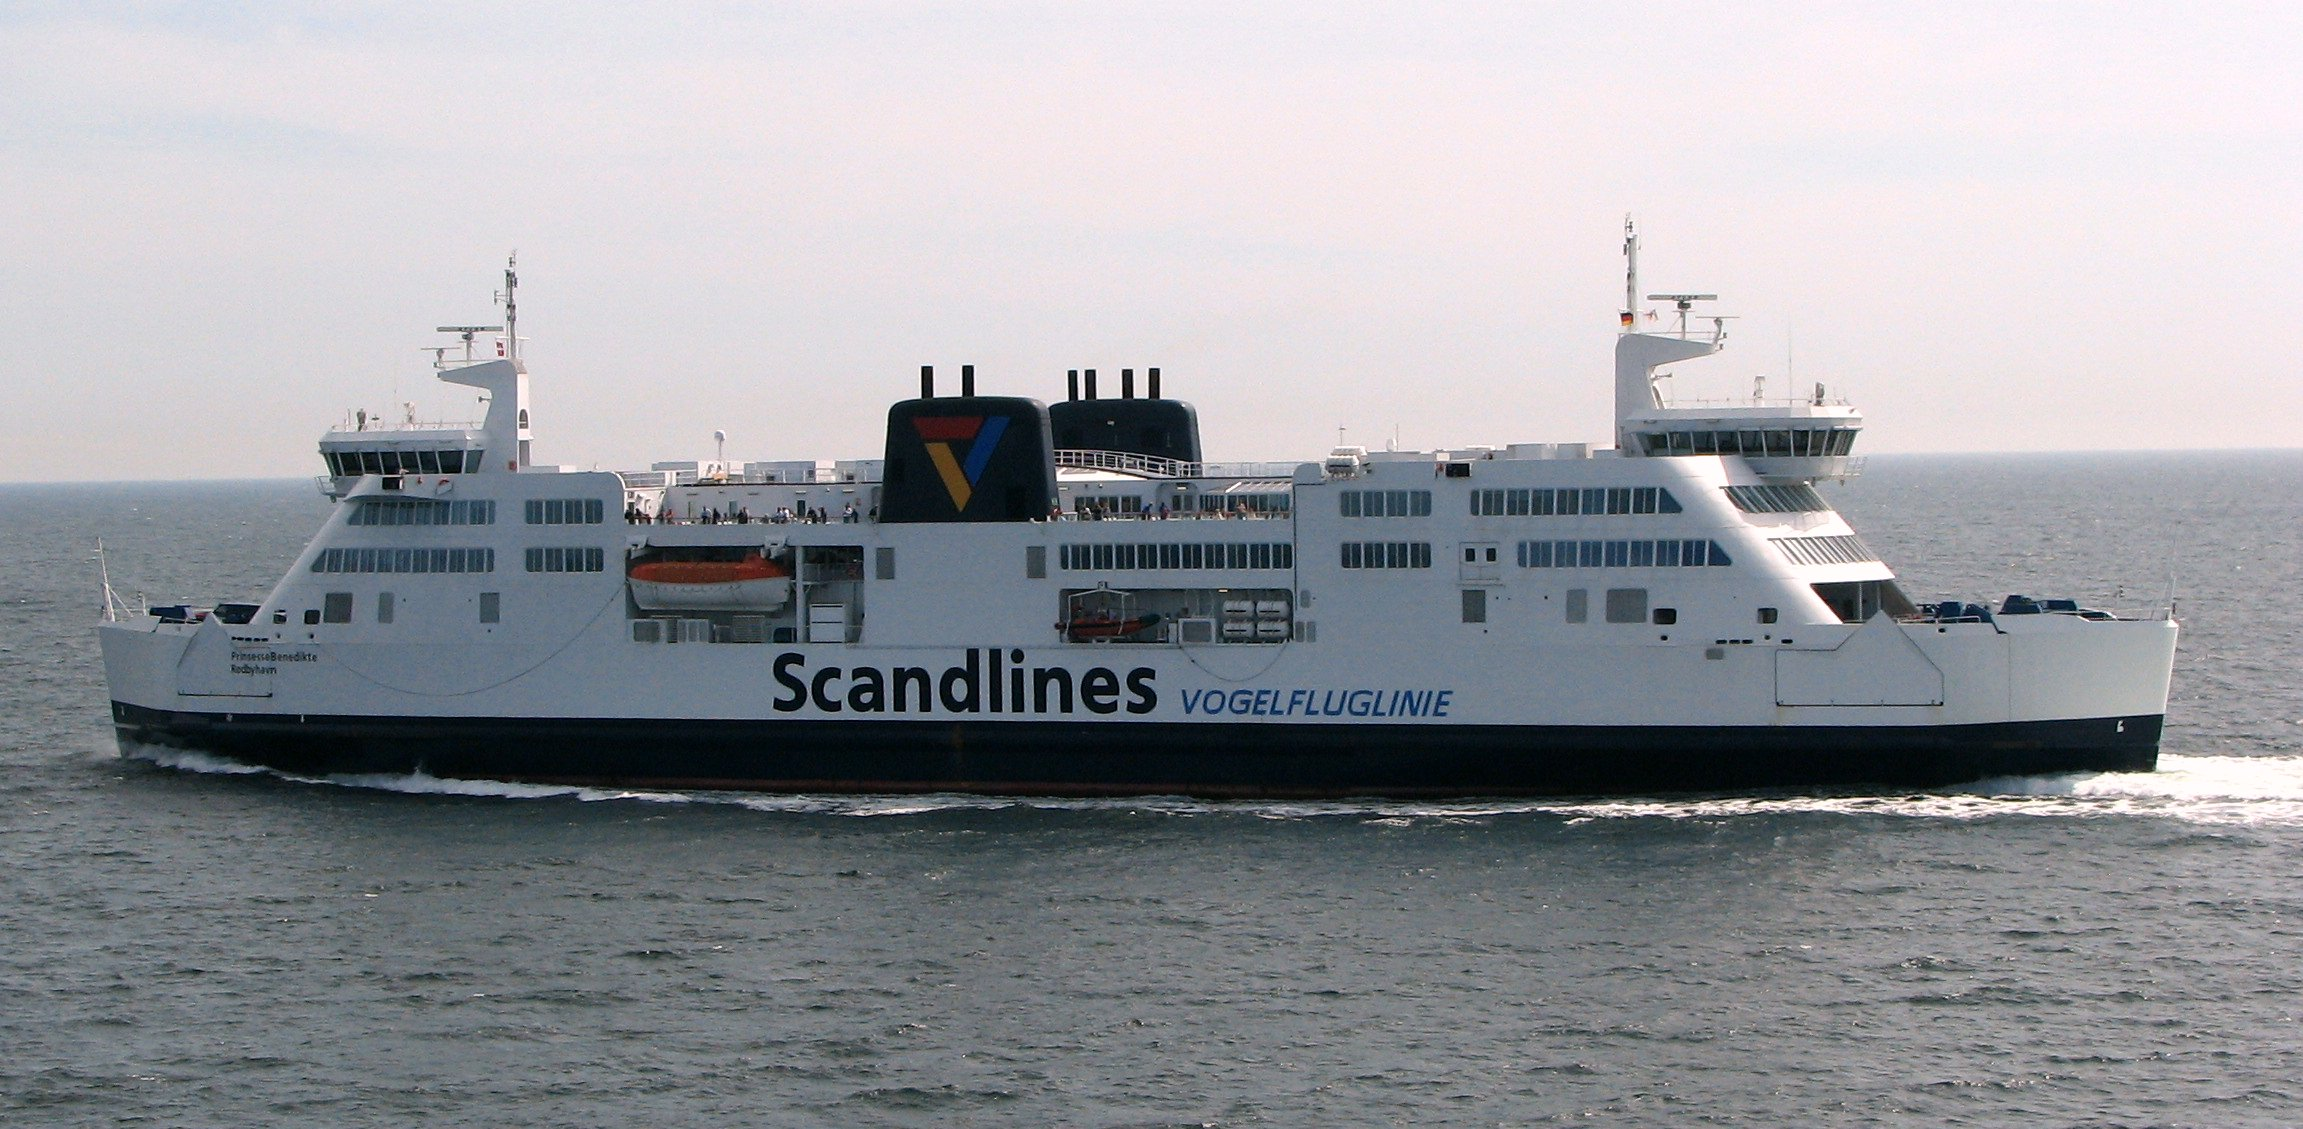 scandlines puttgarden rodby